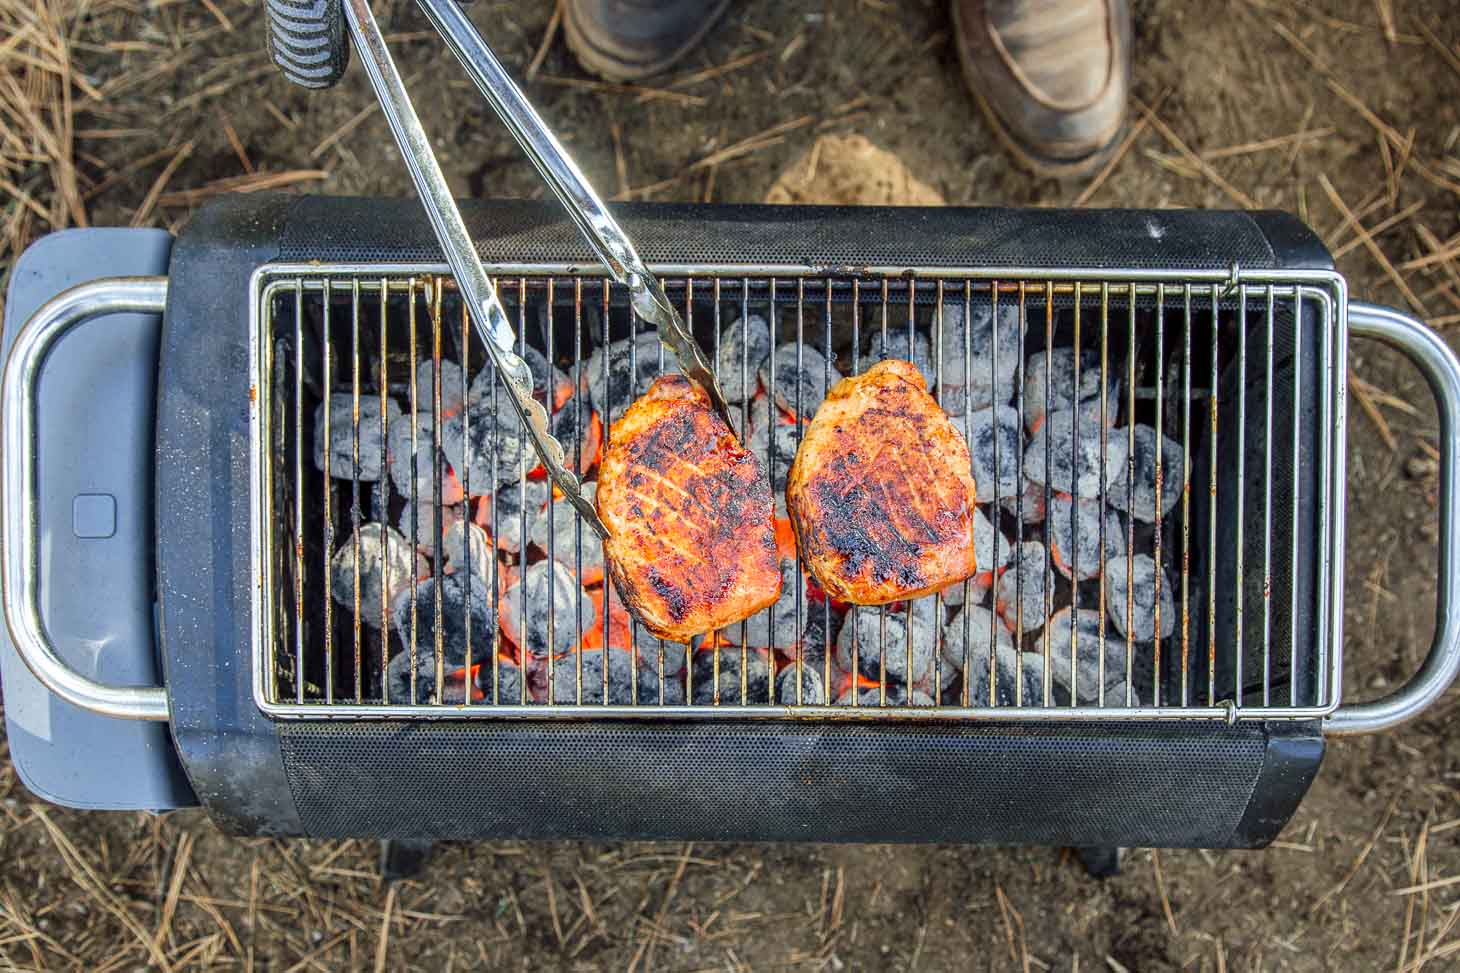 Grilling pork loin on a camping grill